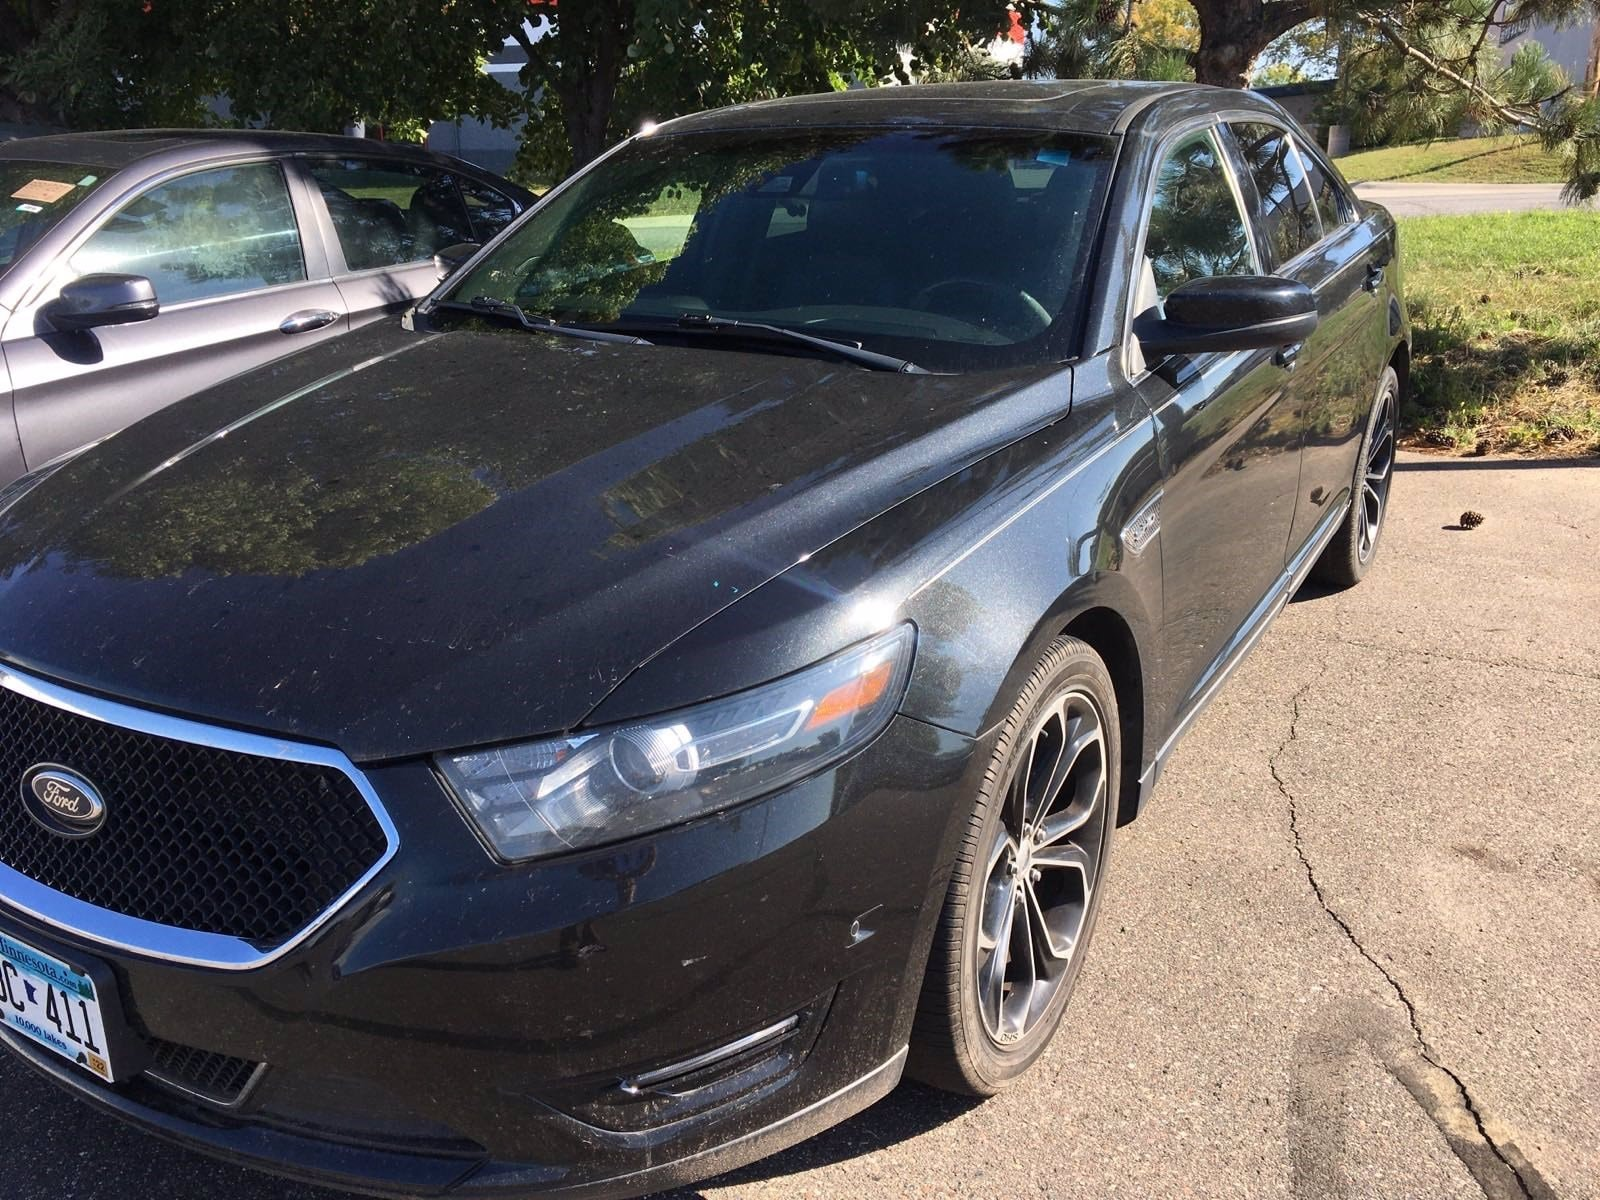 Used 2013 Ford Taurus SHO with VIN 1FAHP2KT2DG172101 for sale in Baxter, Minnesota